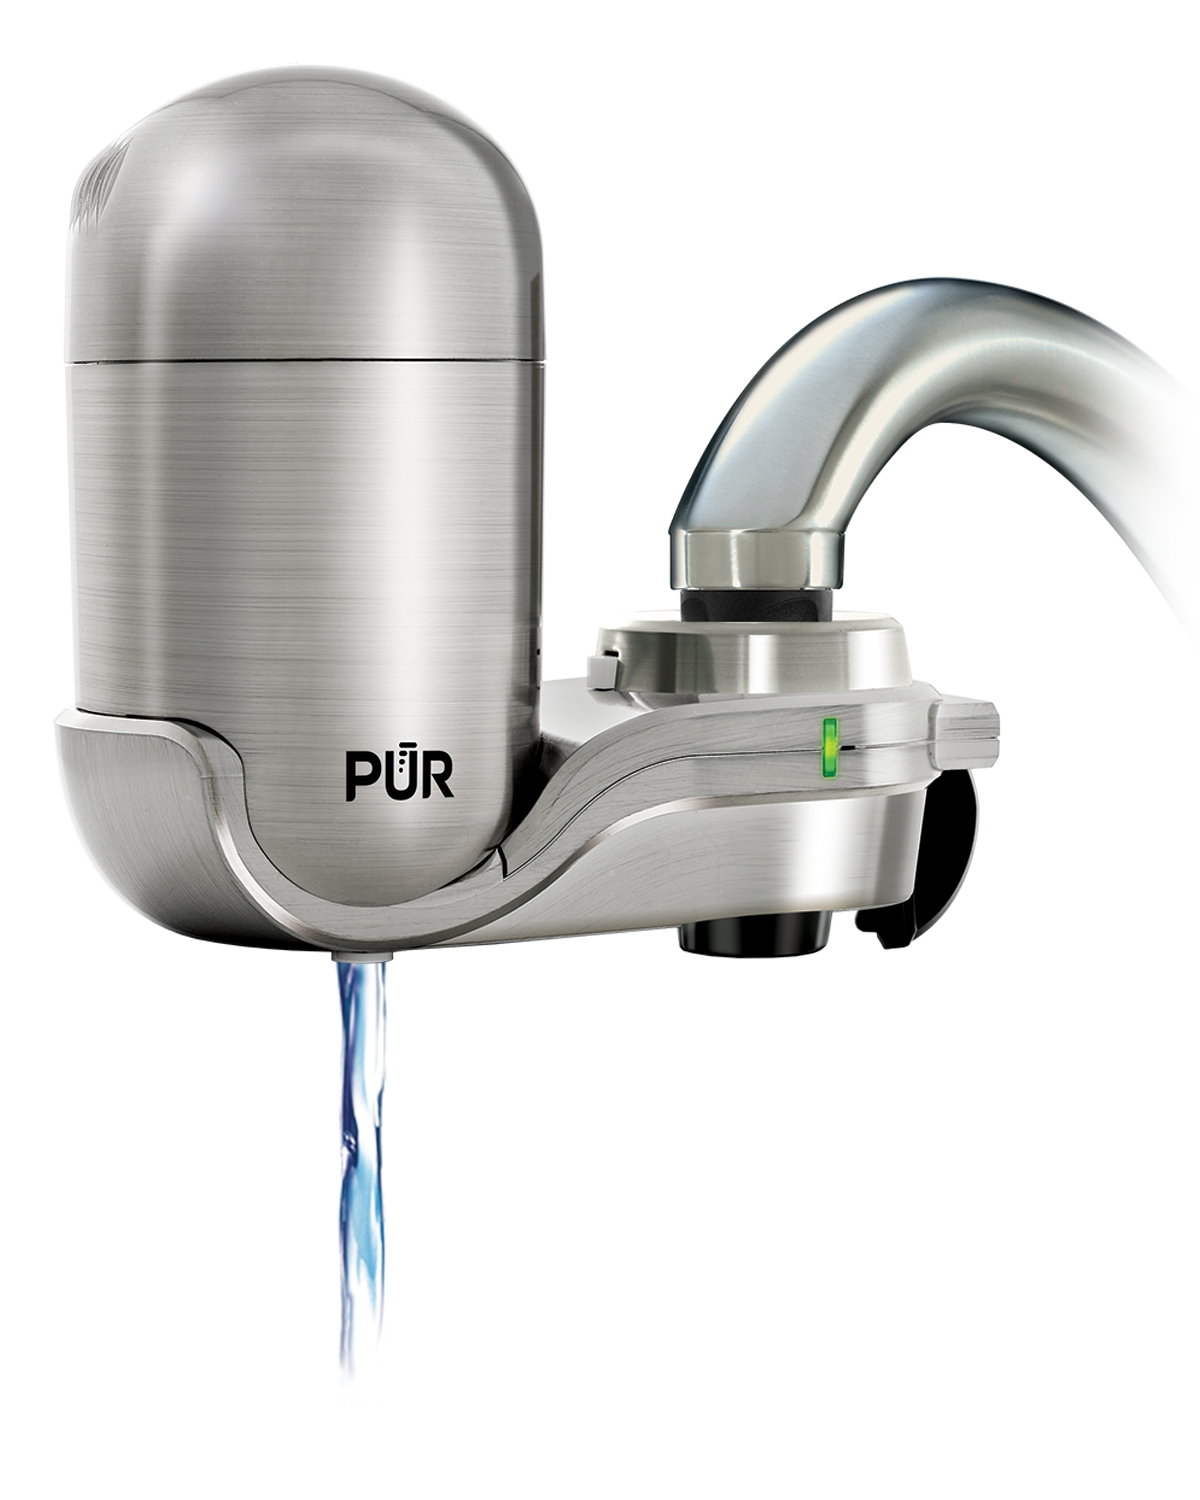 Ideas, pur advanced faucet water filter black and chrome walmart with measurements 1200 x 1500 jpeg.